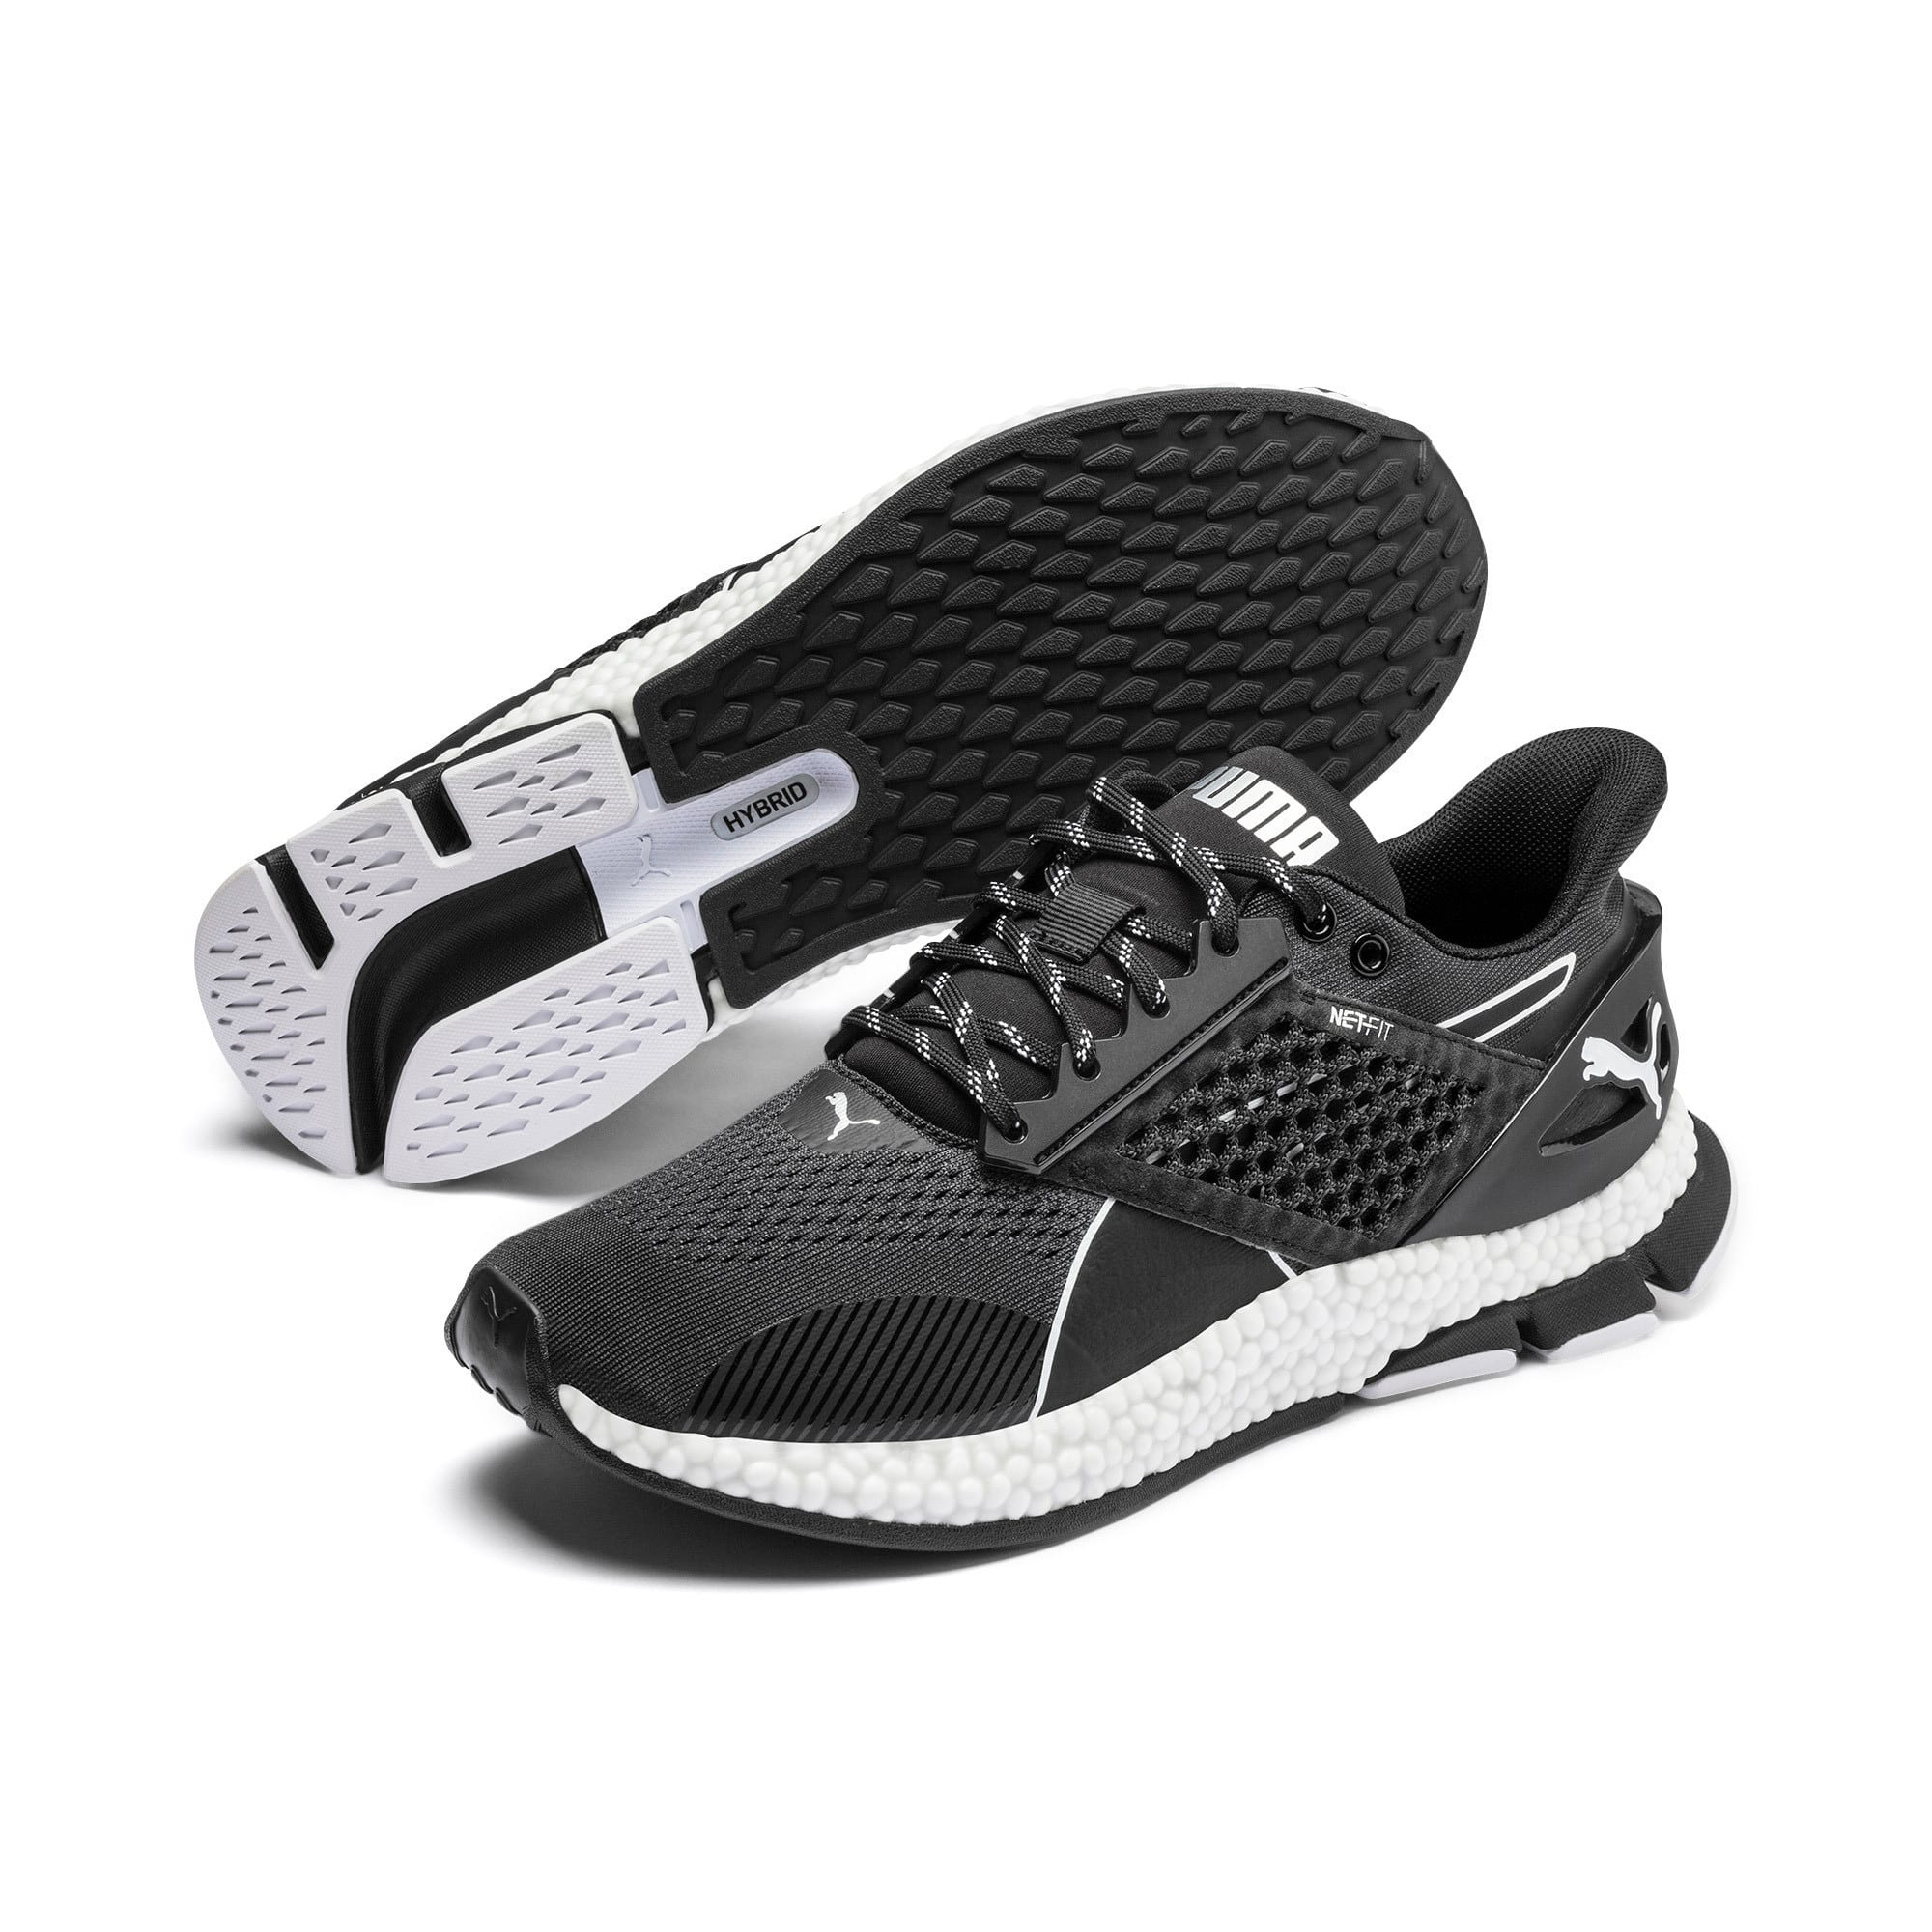 Thumbnail 3 of HYBRID NETFIT Astro Men's Running Shoes, Puma Black-Puma White, medium